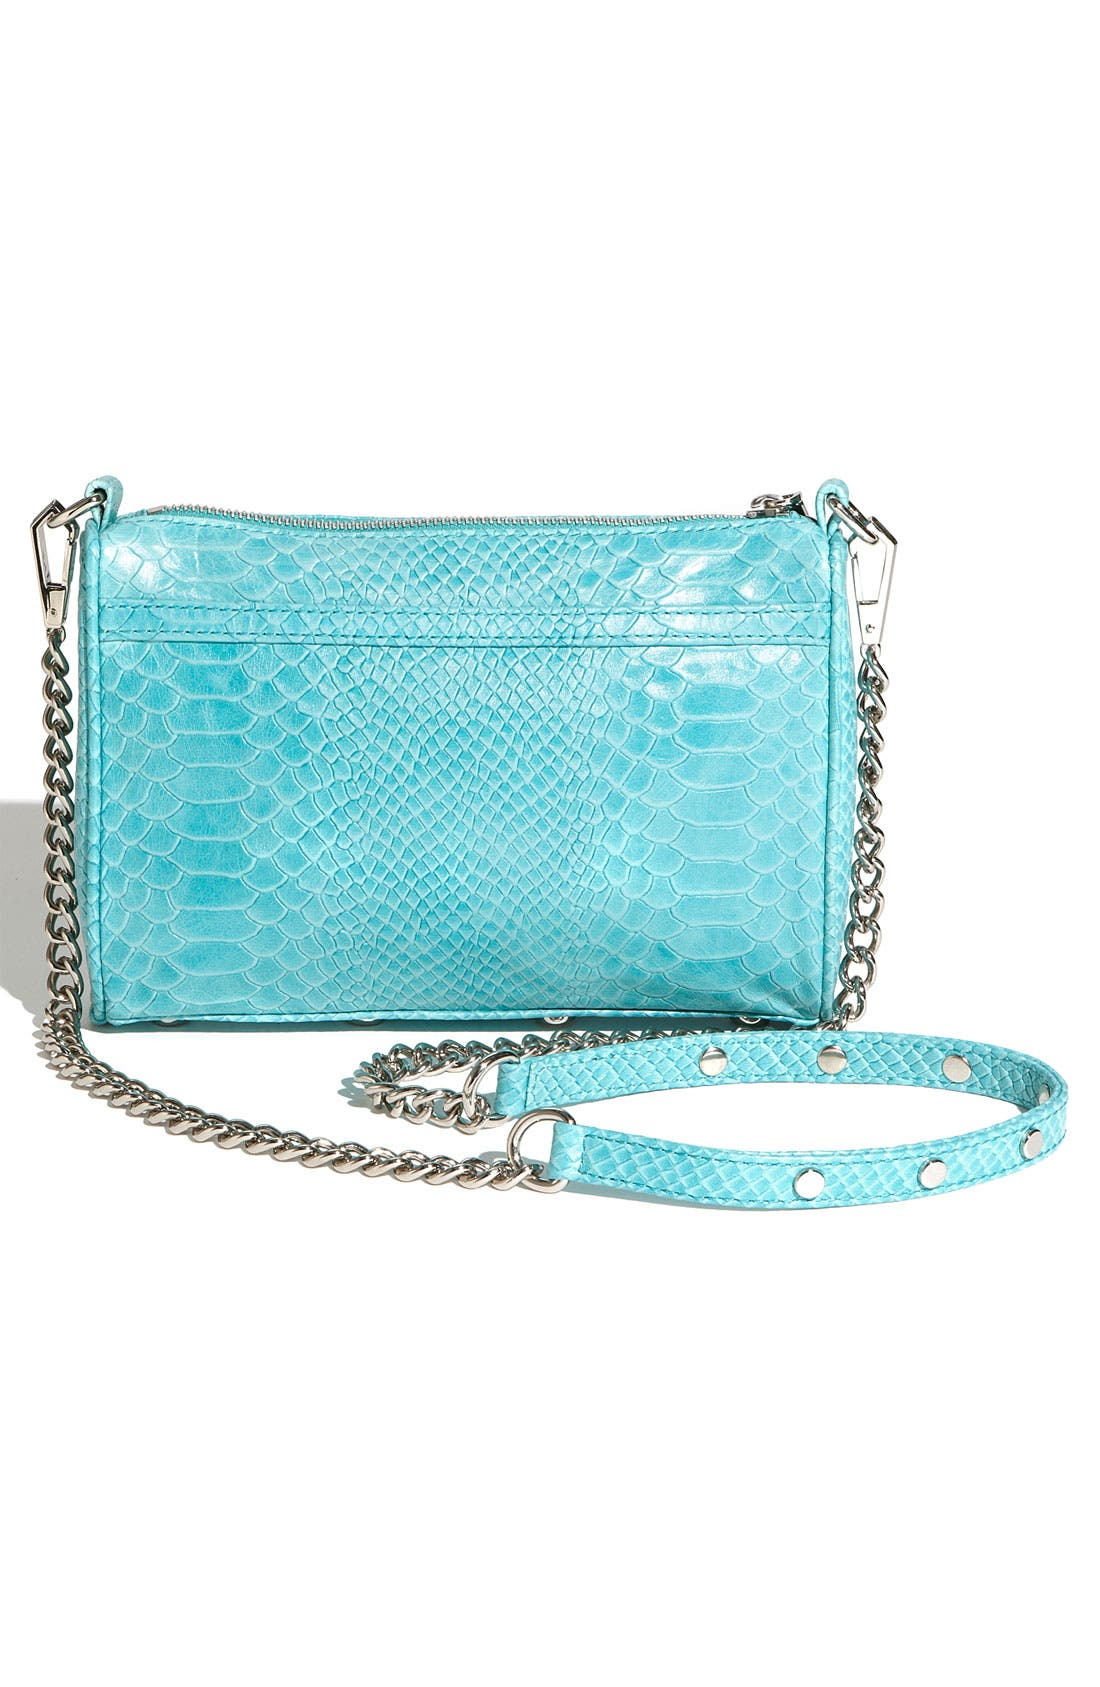 'Mini MAC' Croc Embossed Convertible Crossbody Bag,                             Alternate thumbnail 41, color,